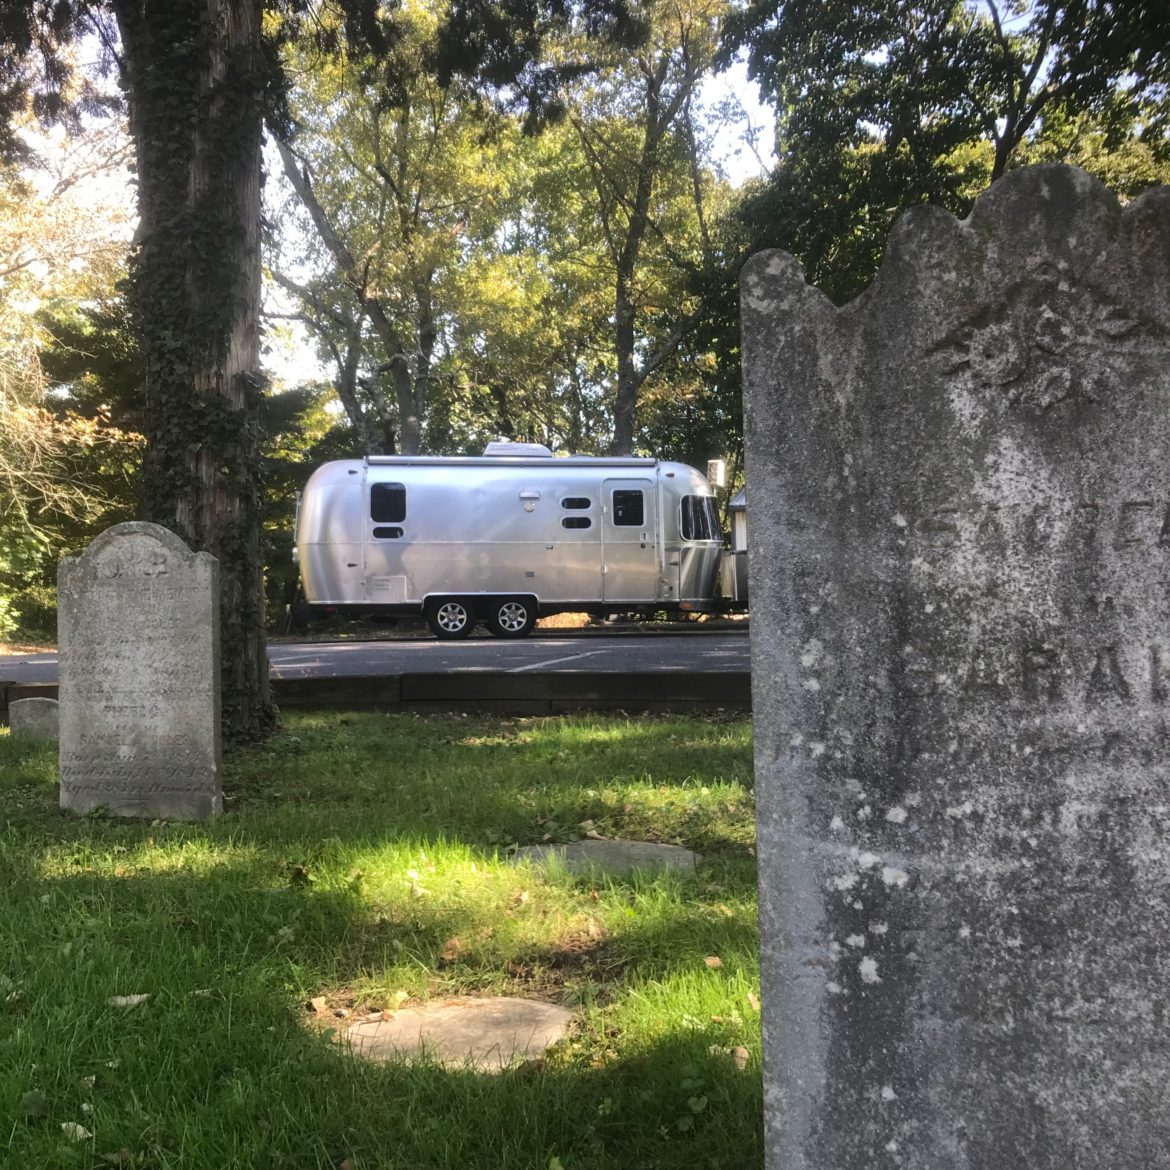 Aolani the Airstream Headstonin' it with Other Ghouls in South Jersey and Make Sweets with the Artisan Marshmallow Co.